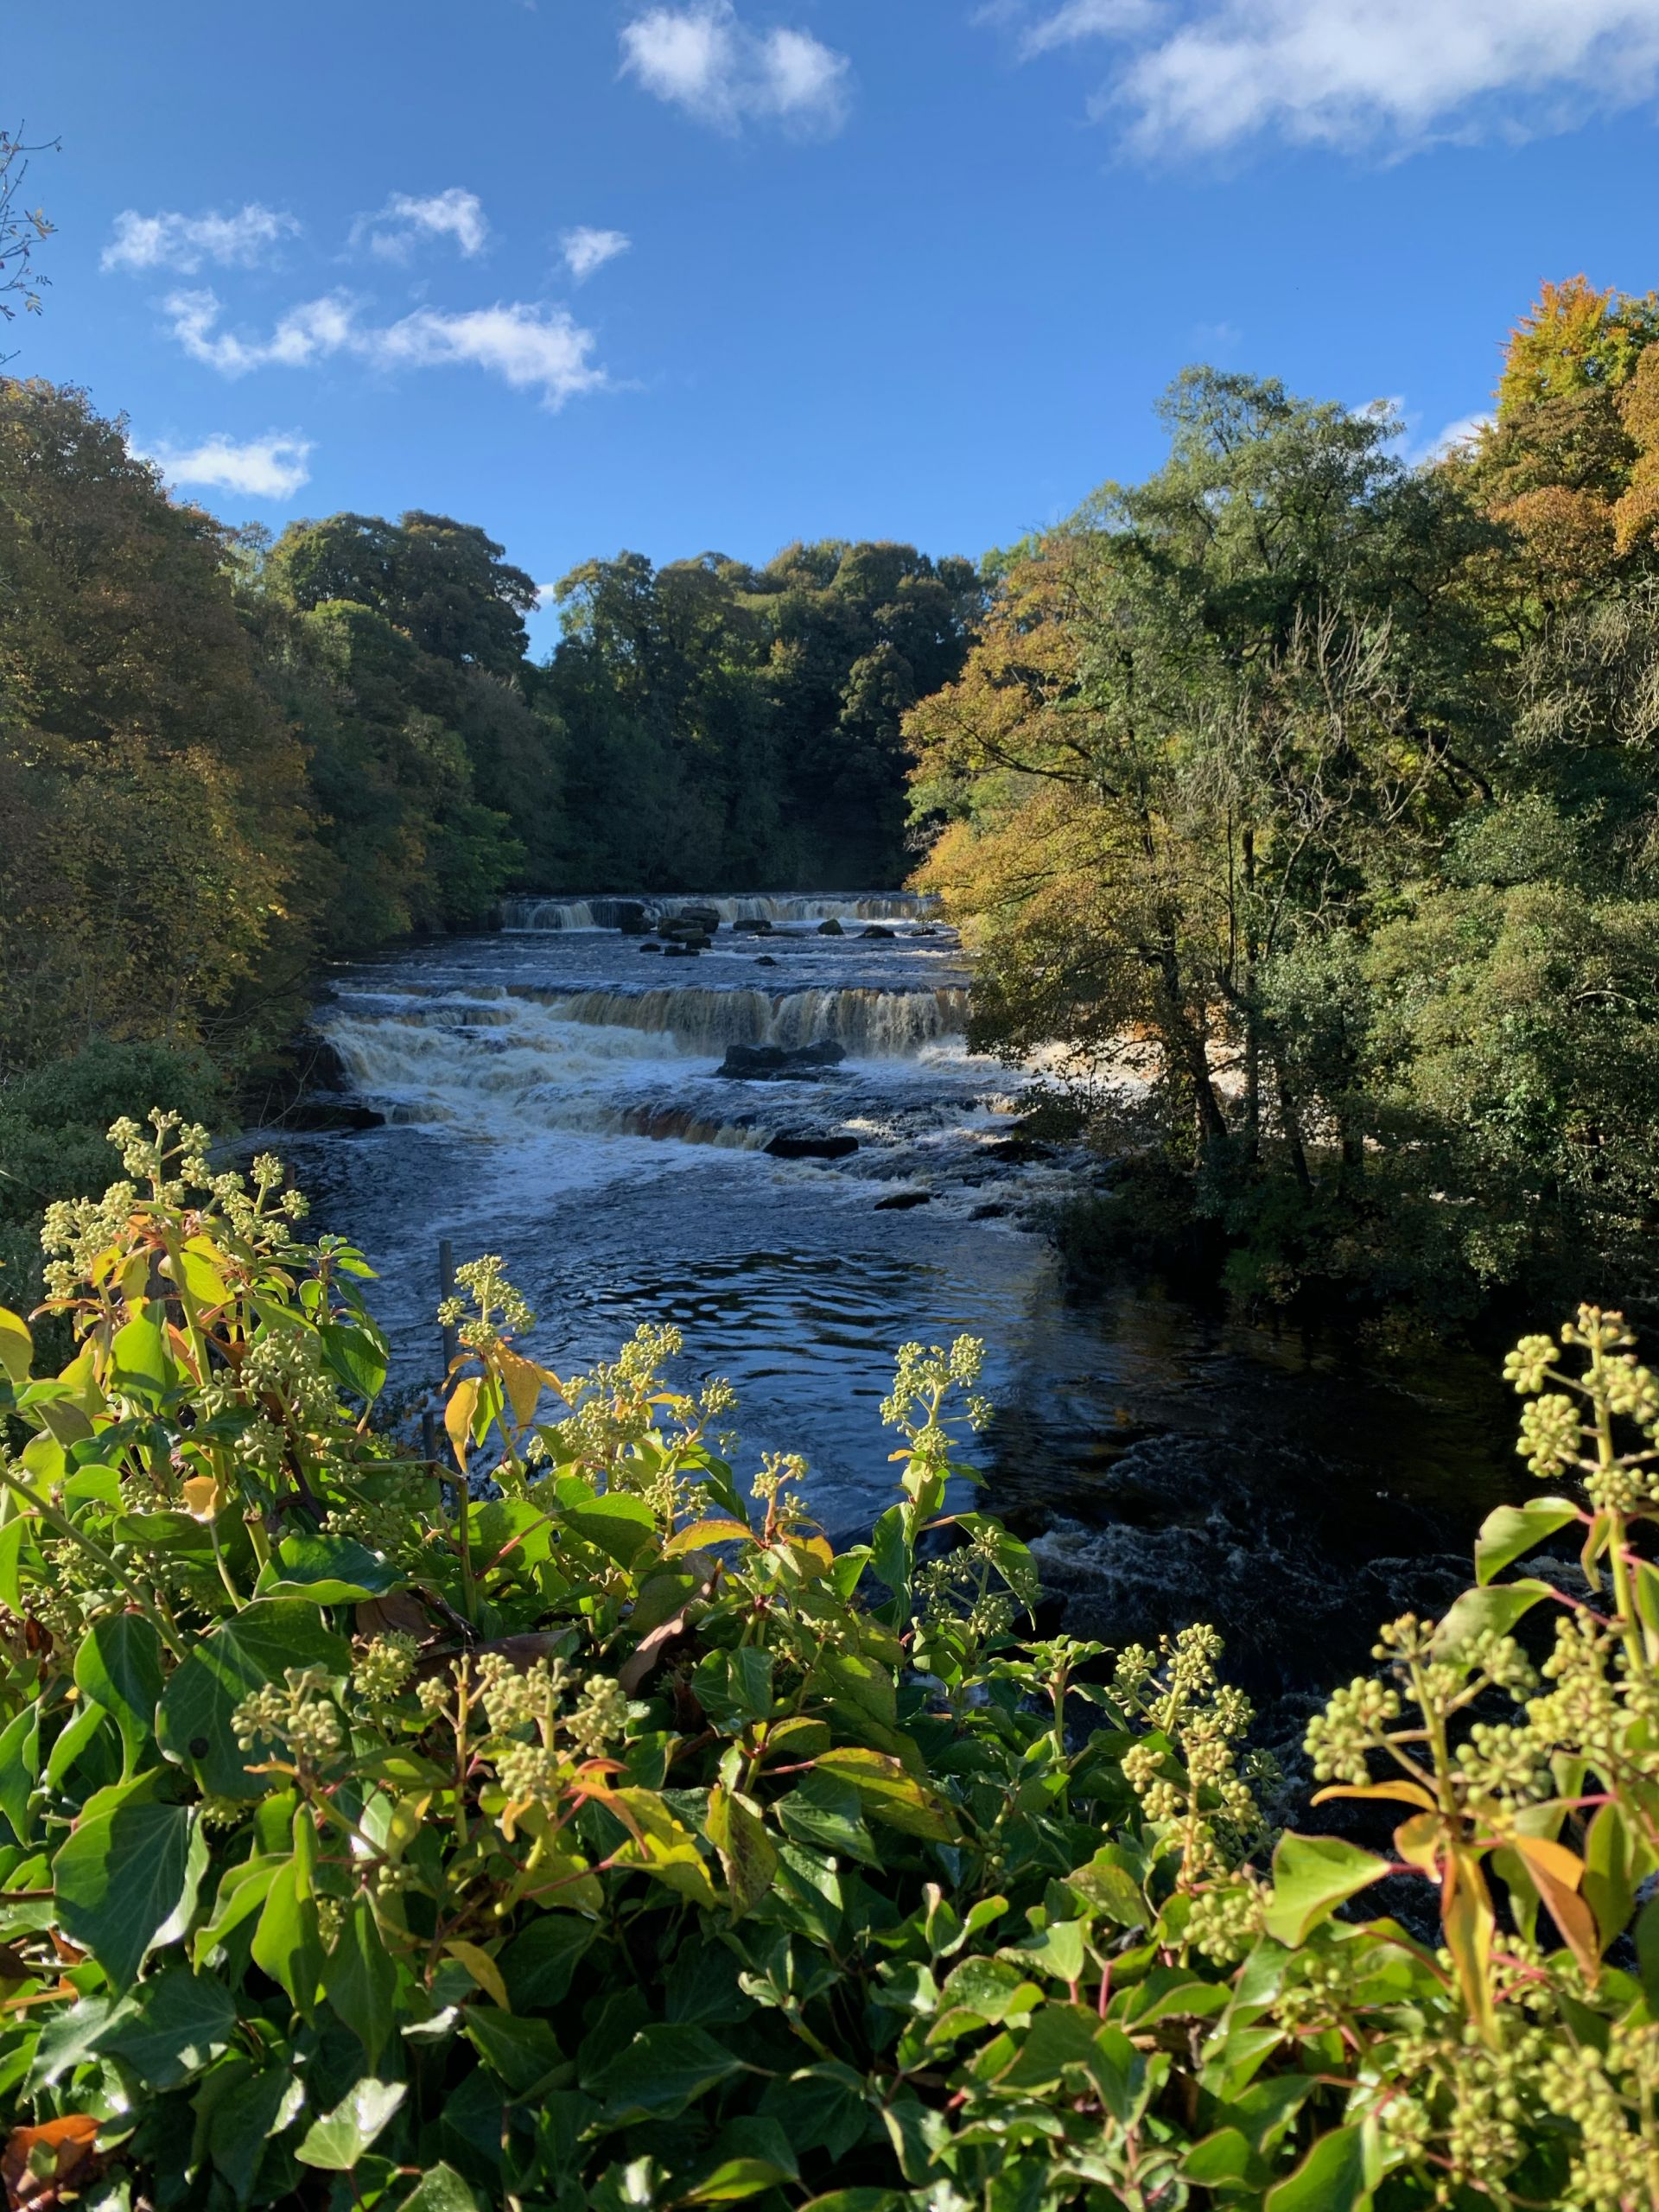 Aygarth Falls in the Yorkshire Dales